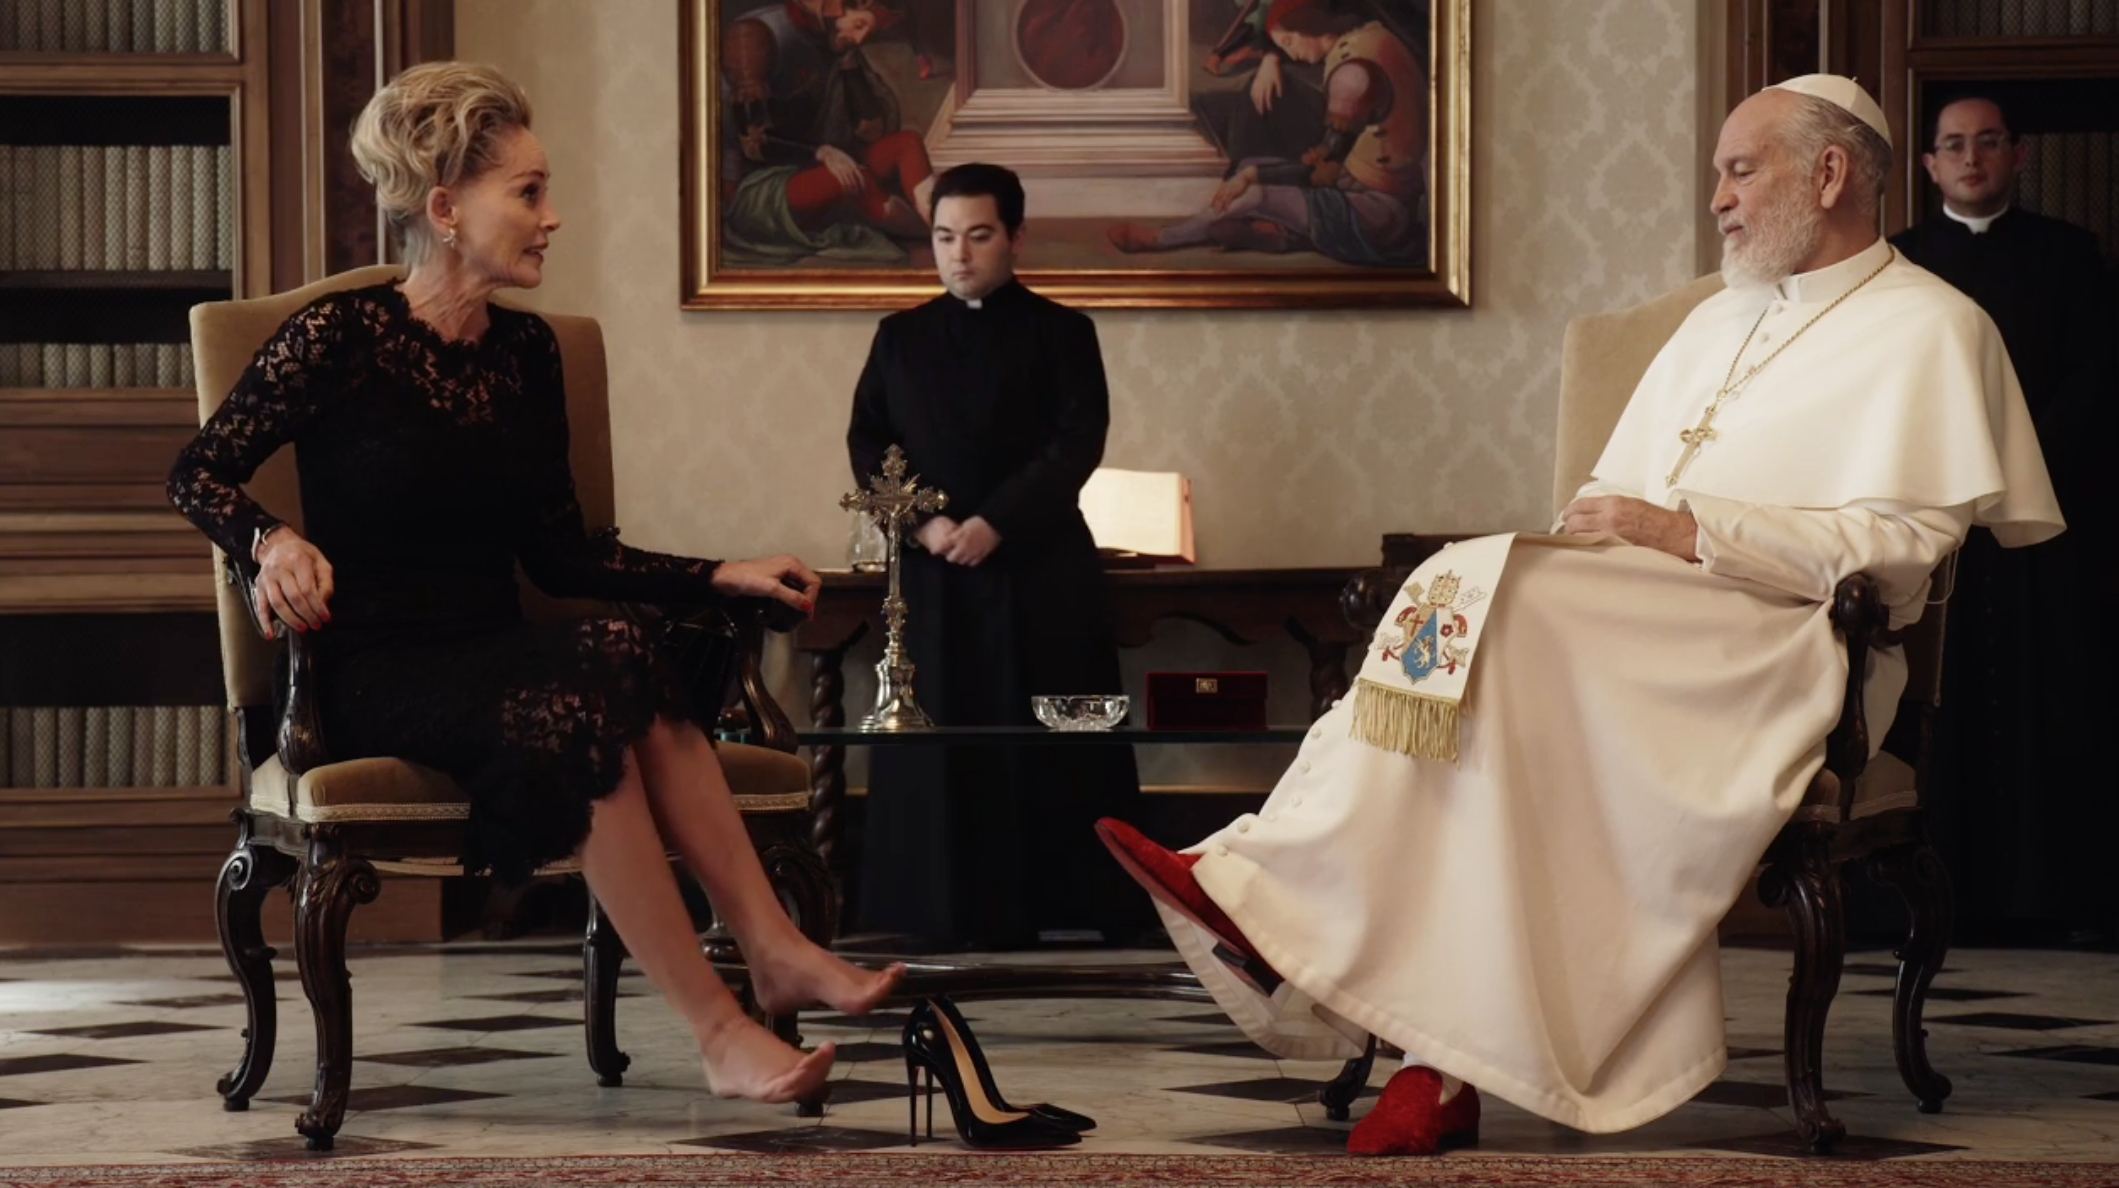 The New Pope Popedown: Sharon Stone Gave The Pope Her Shoes